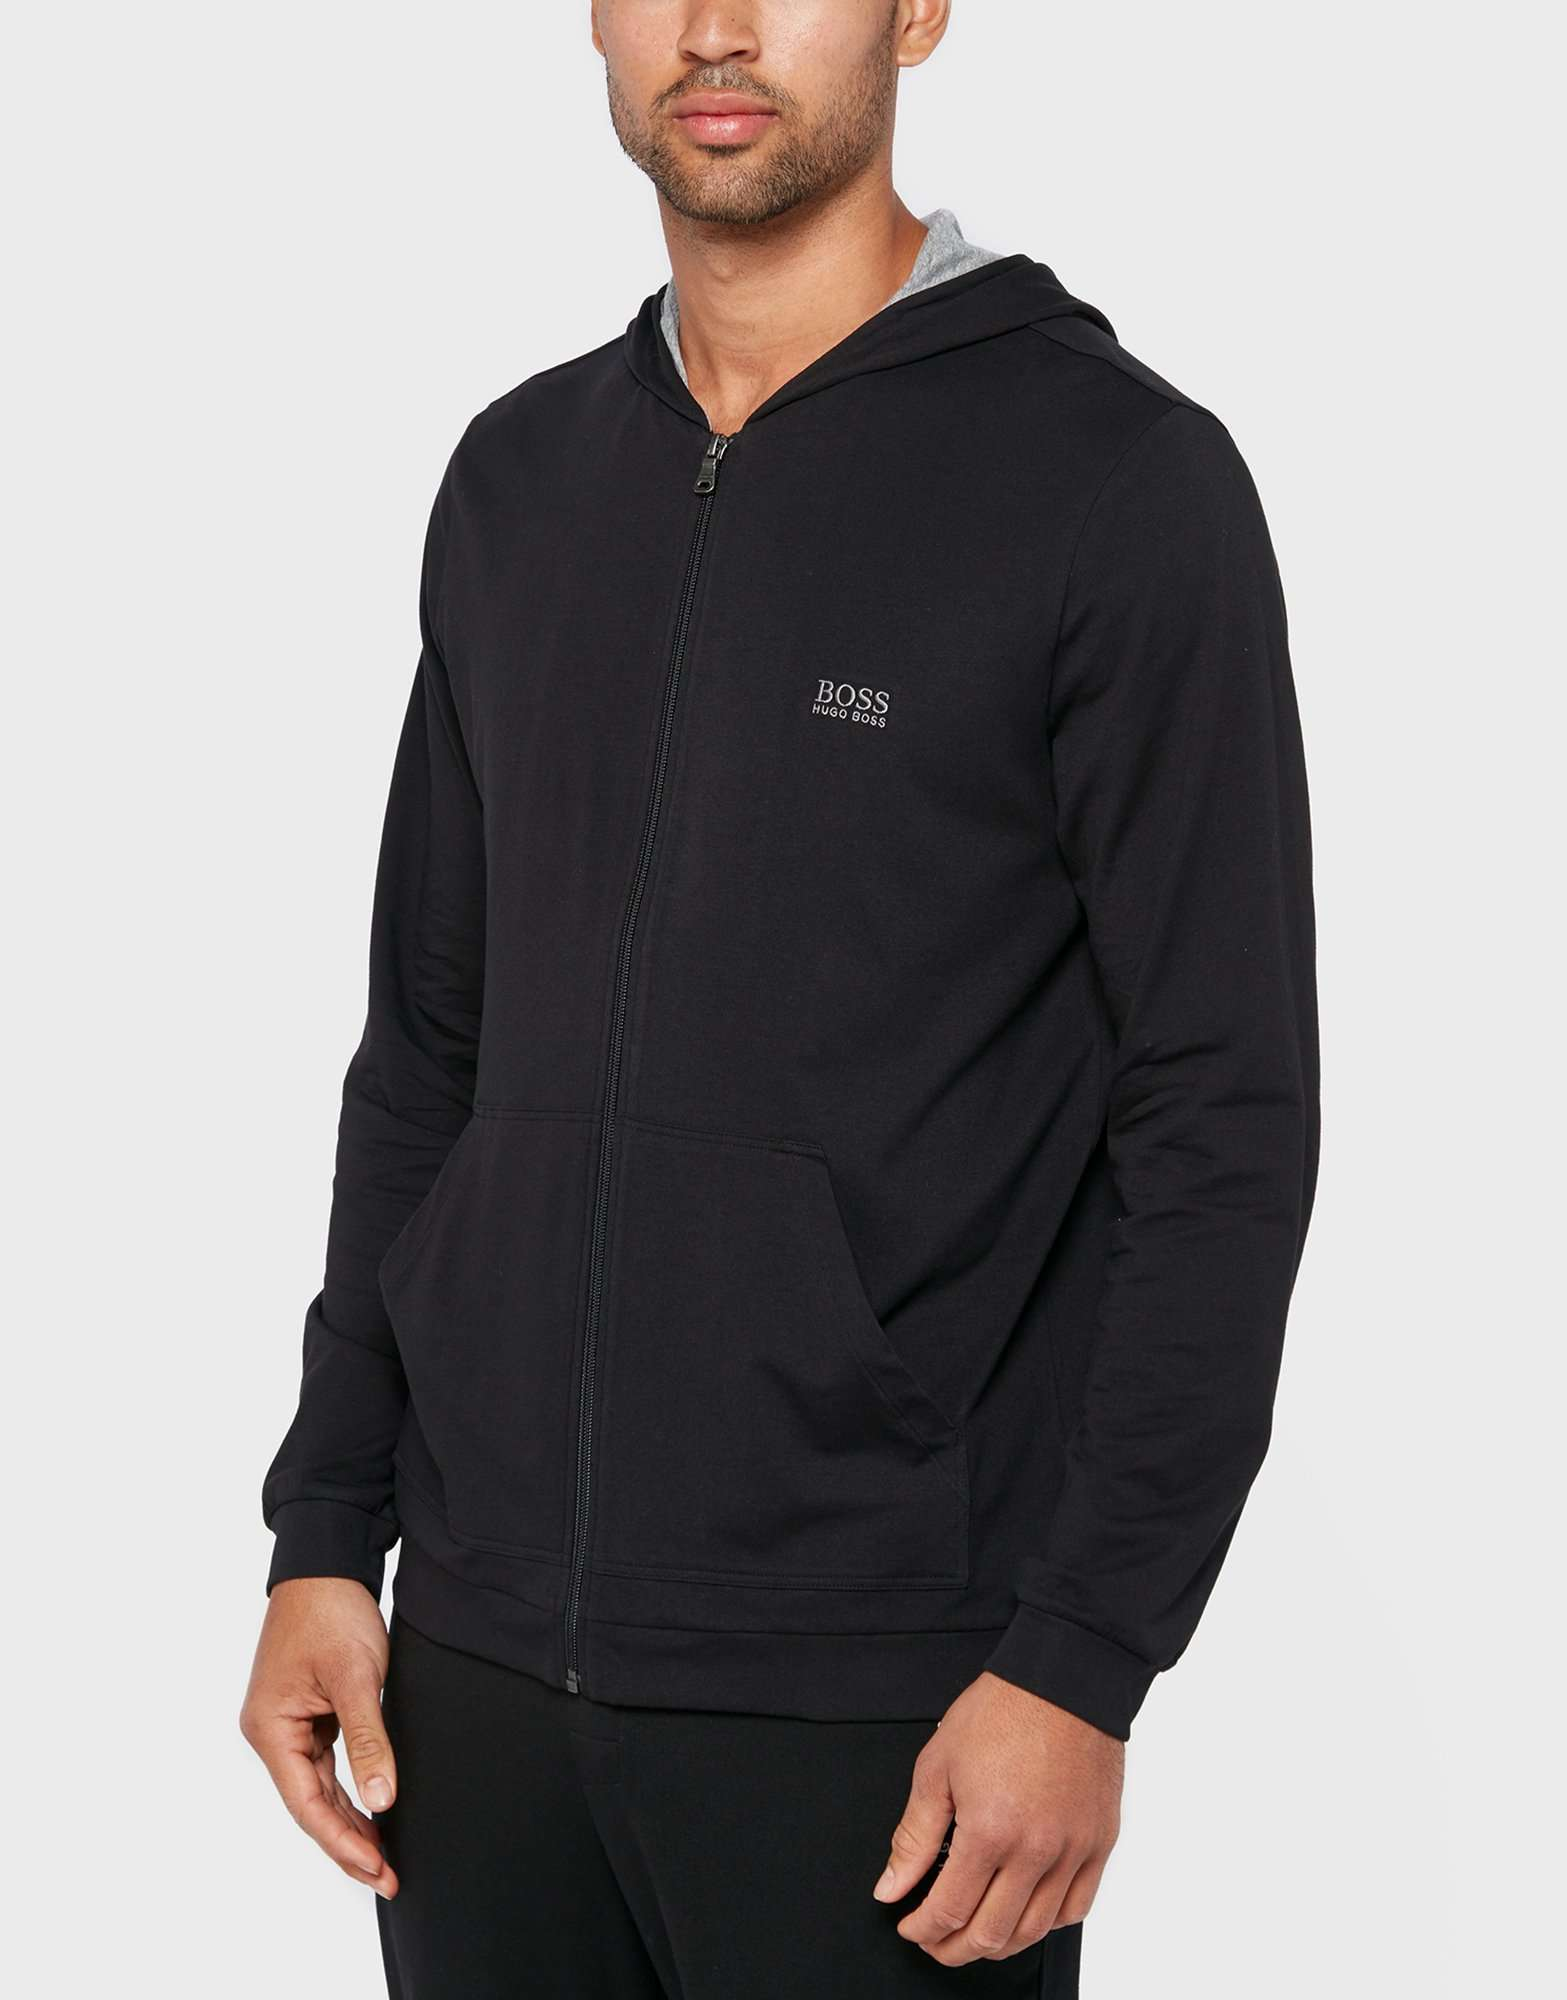 BOSS Lounge Hooded Top